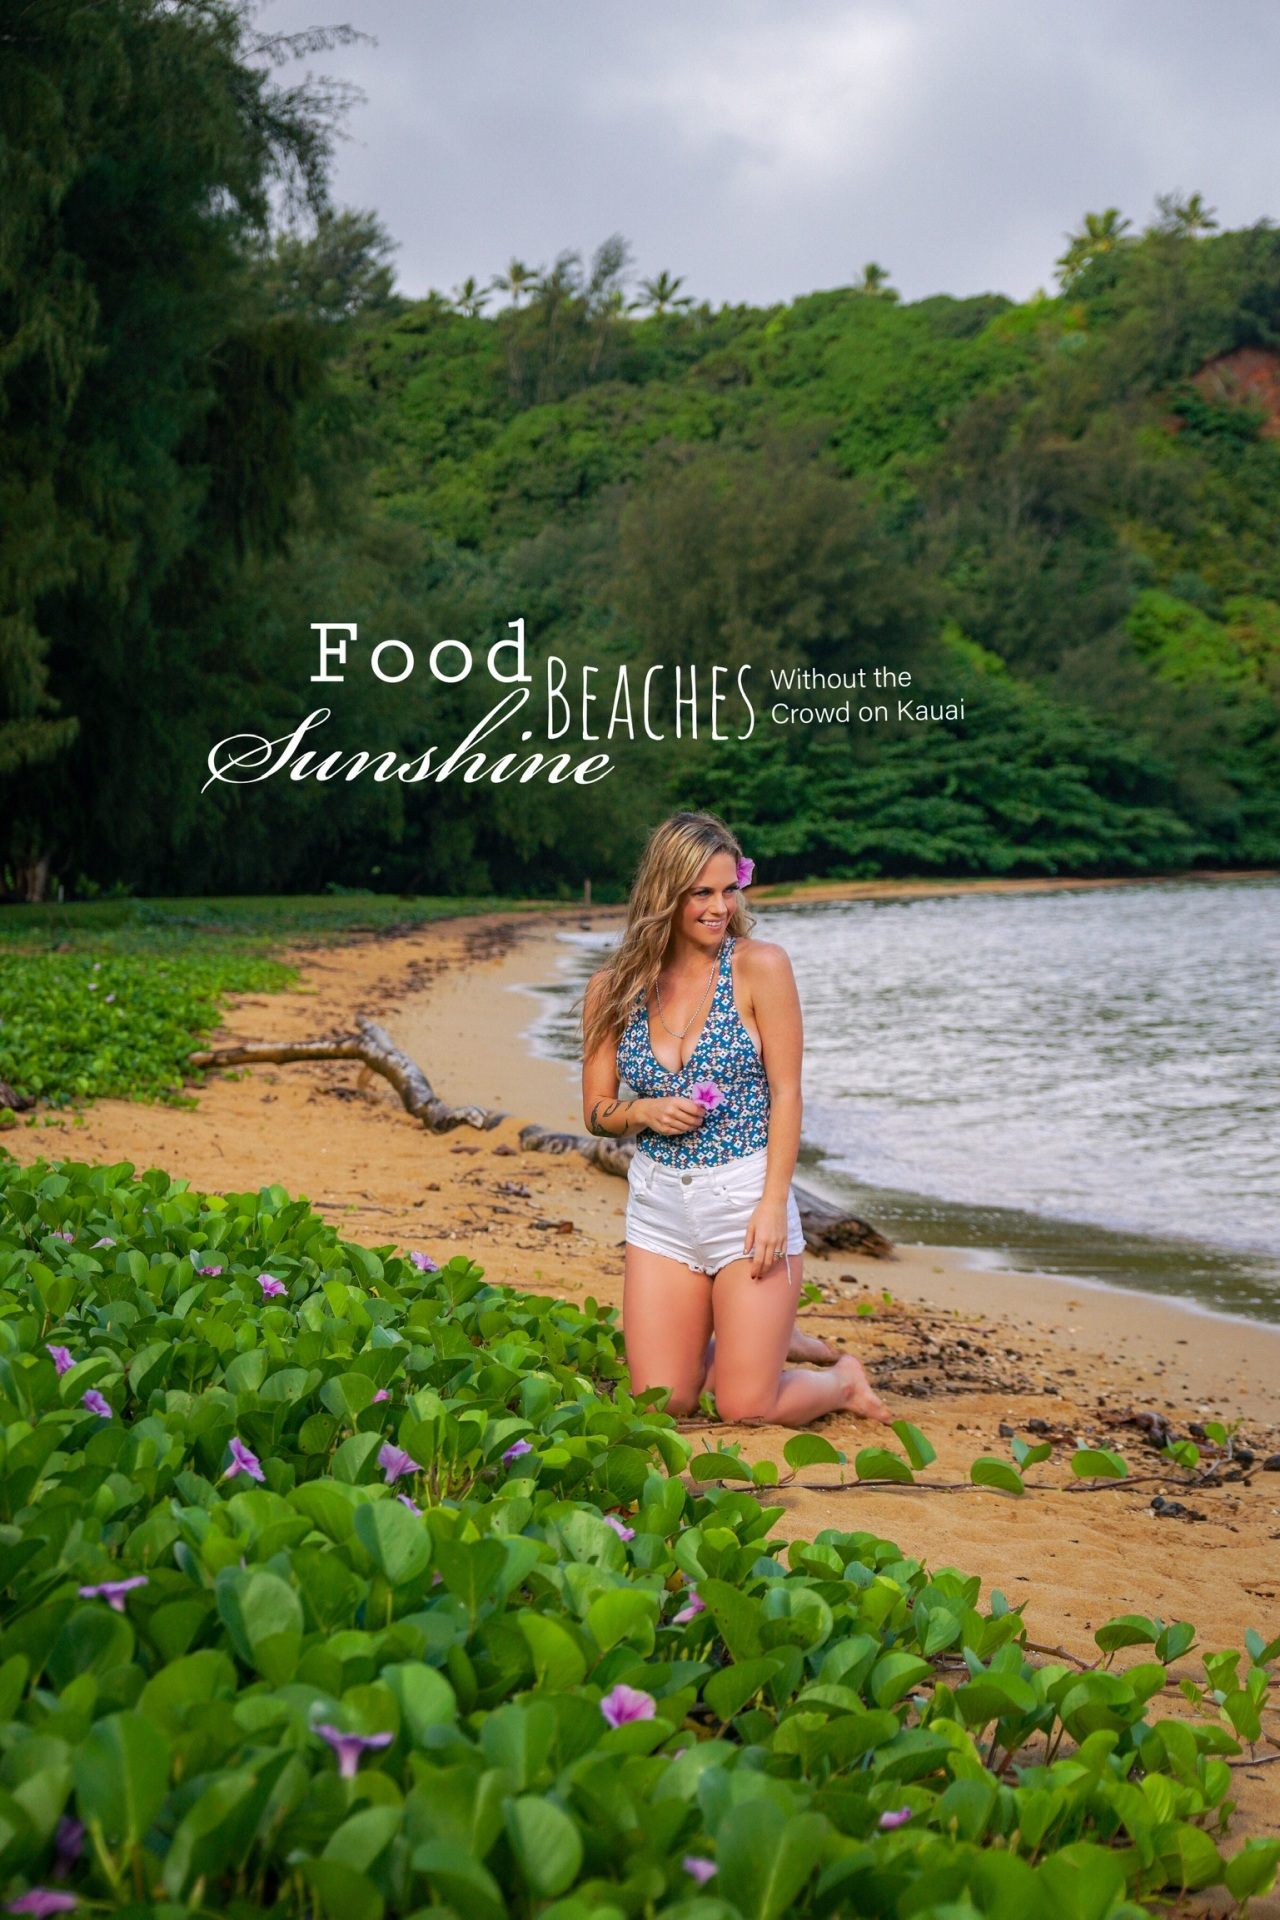 Food, Sunshine, and Beaches Without the Crowd on Kauai